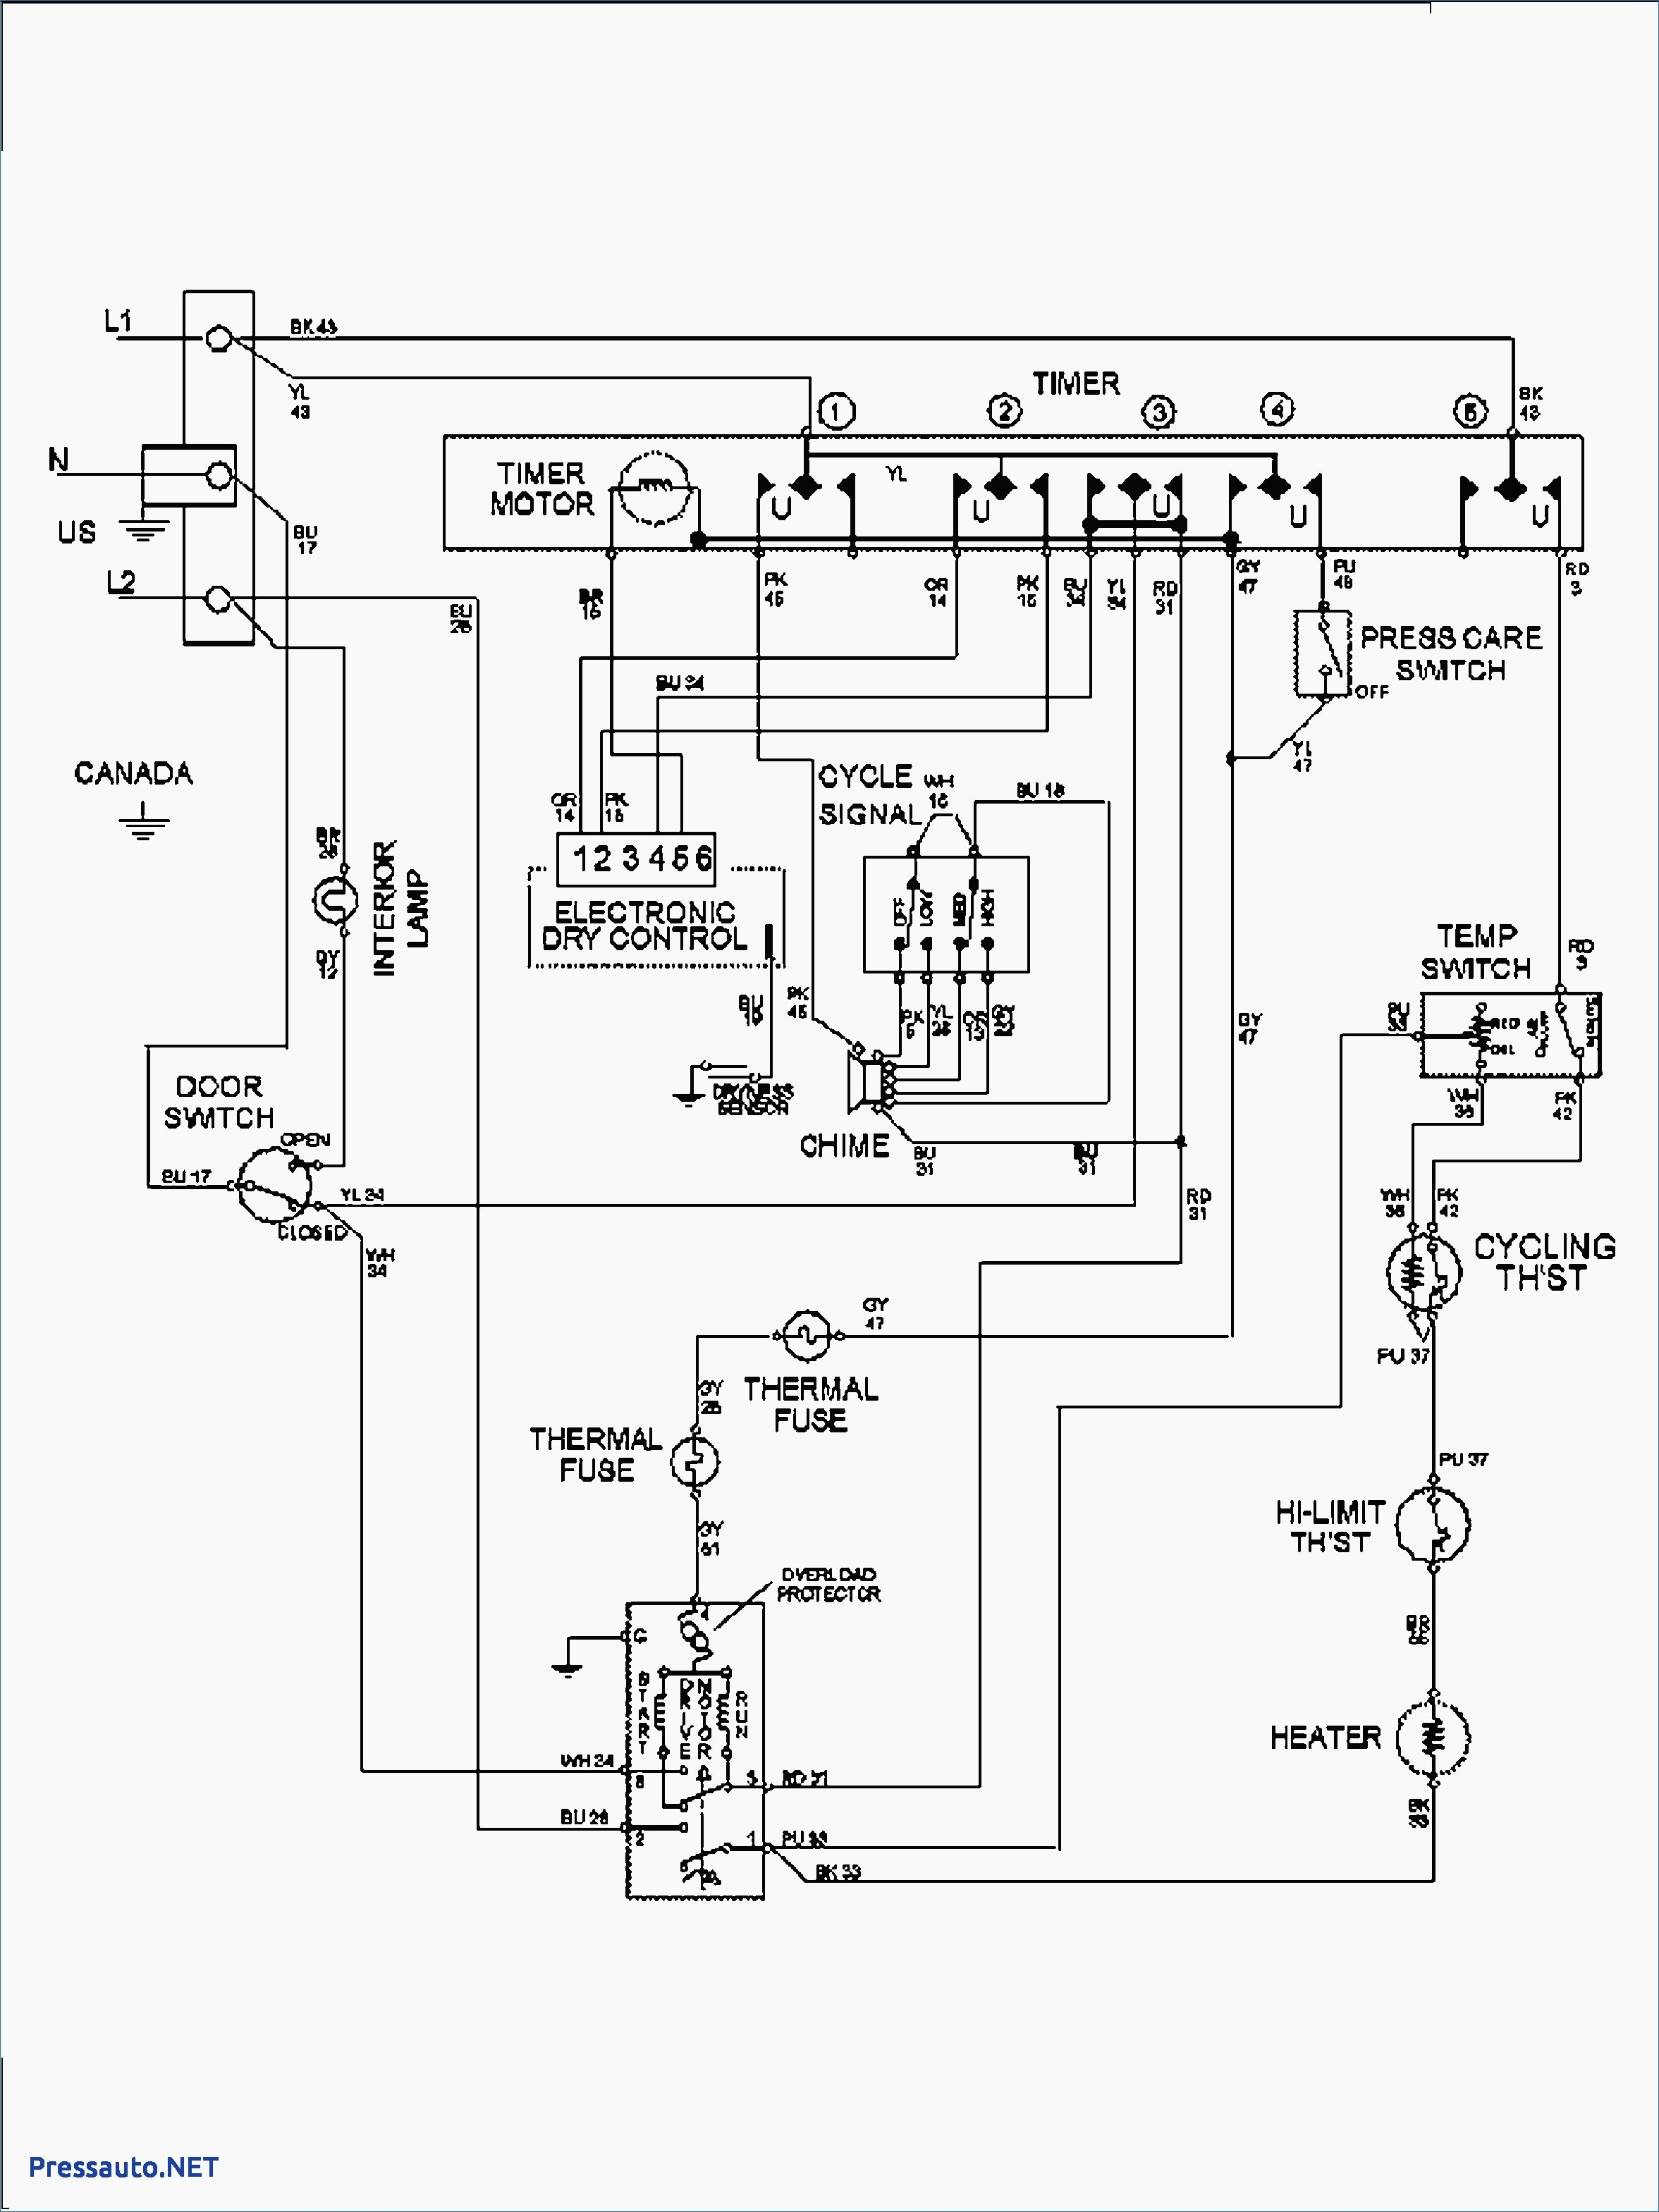 Le Xsno Whirlpool Dryer Wiring Diagram